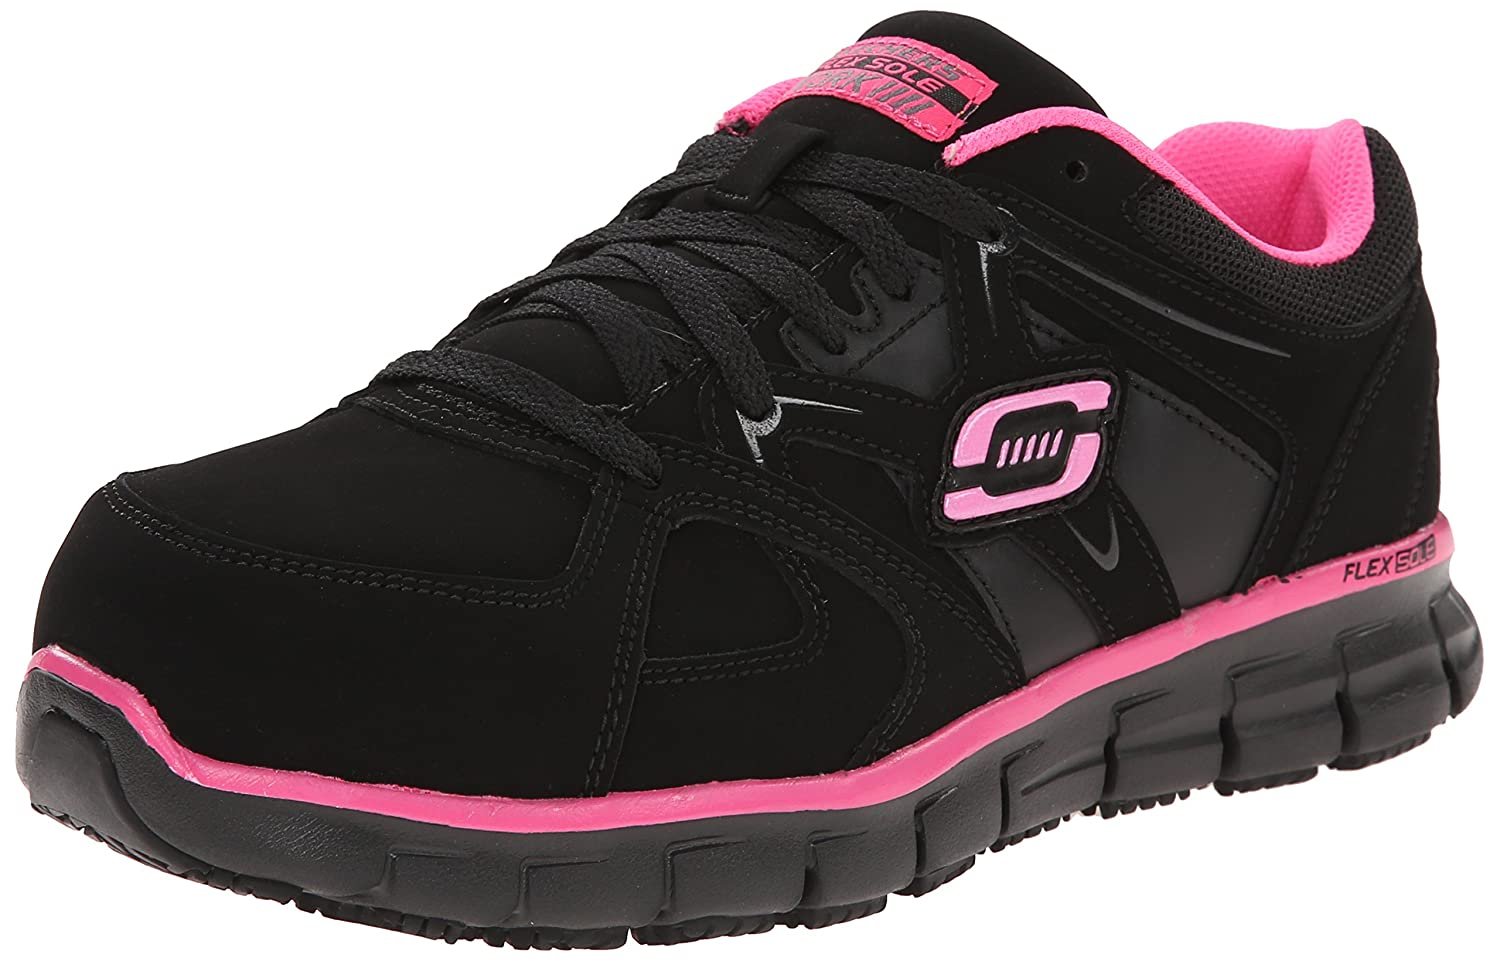 Skechers for Work Women's Synergy Sandlot Alloy Toe Lace-up Work Shoe B00NLI836Q 7 XW US|Black/Pink